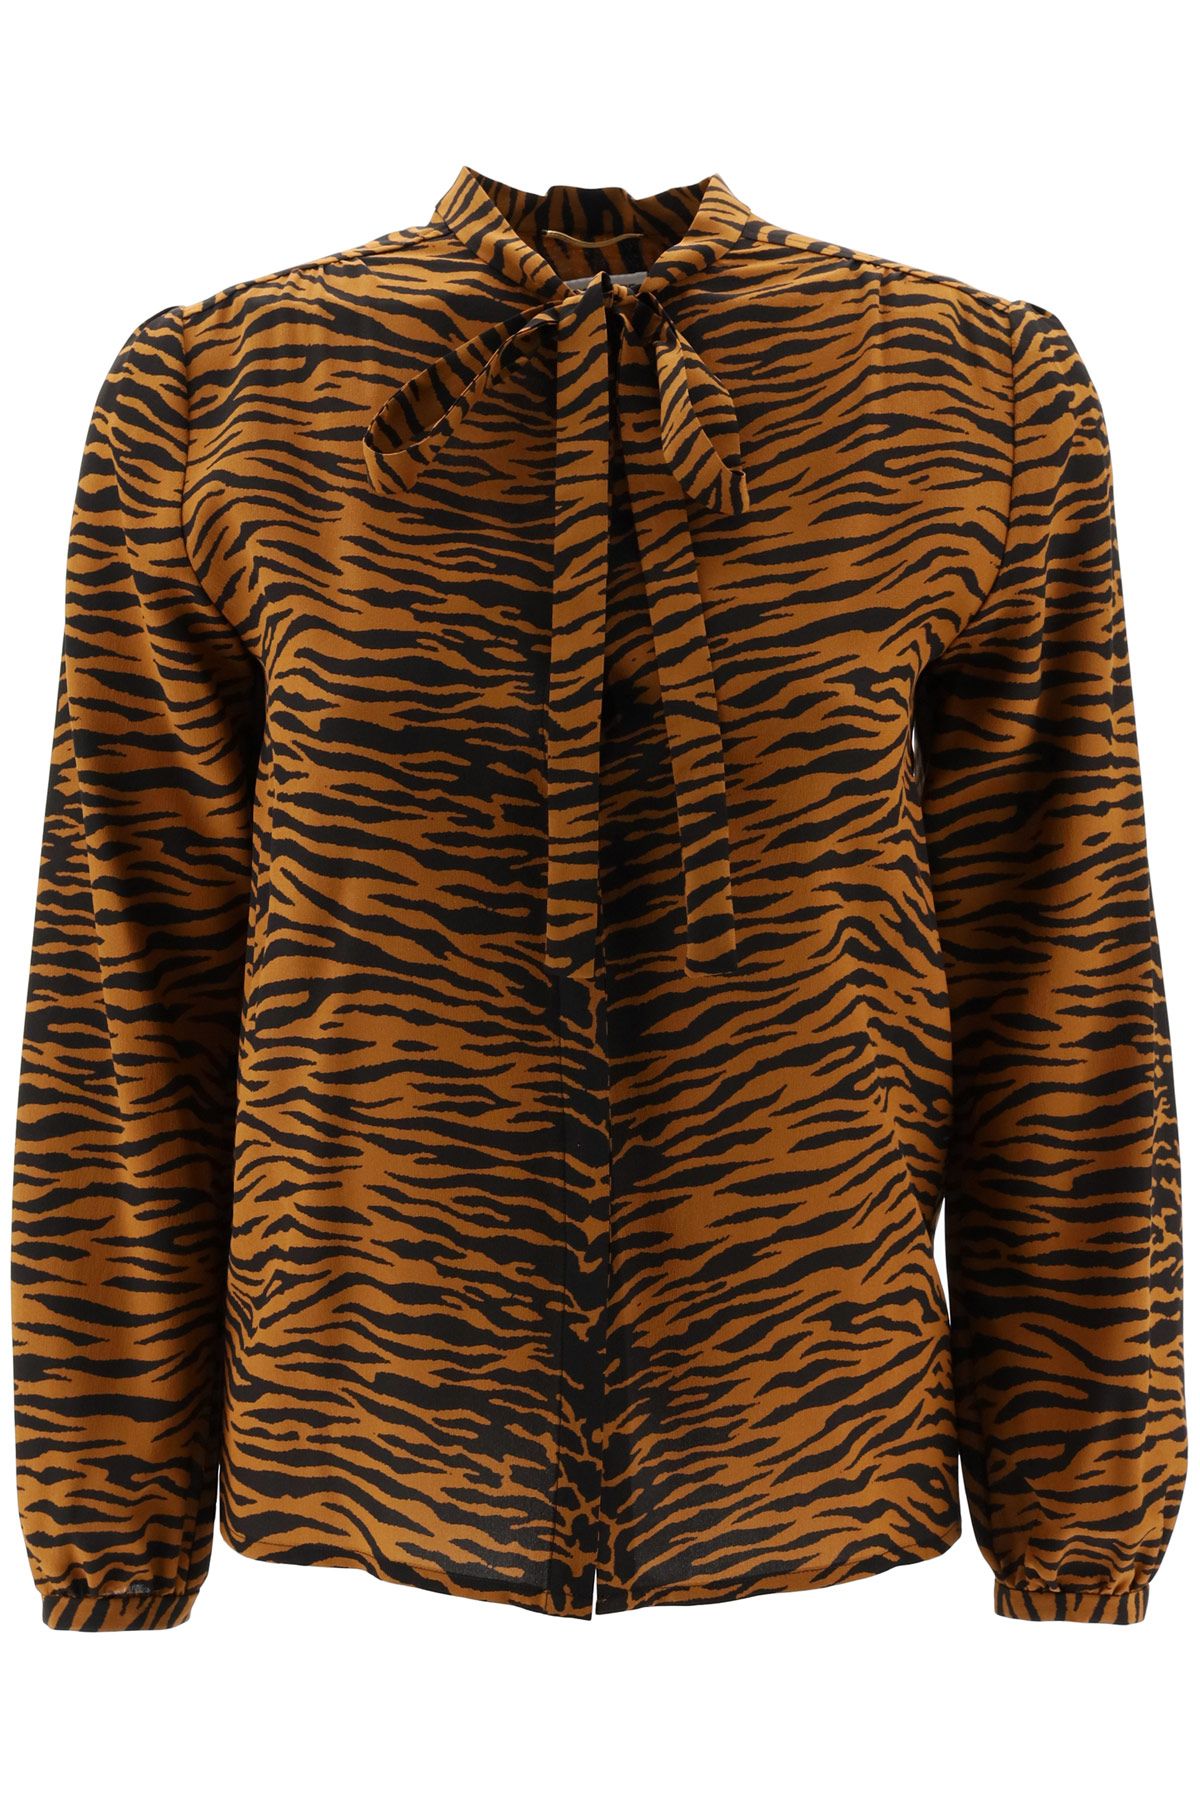 SAINT LAURENT TIGER PRINT SHIRT 36 Brown, Black Silk